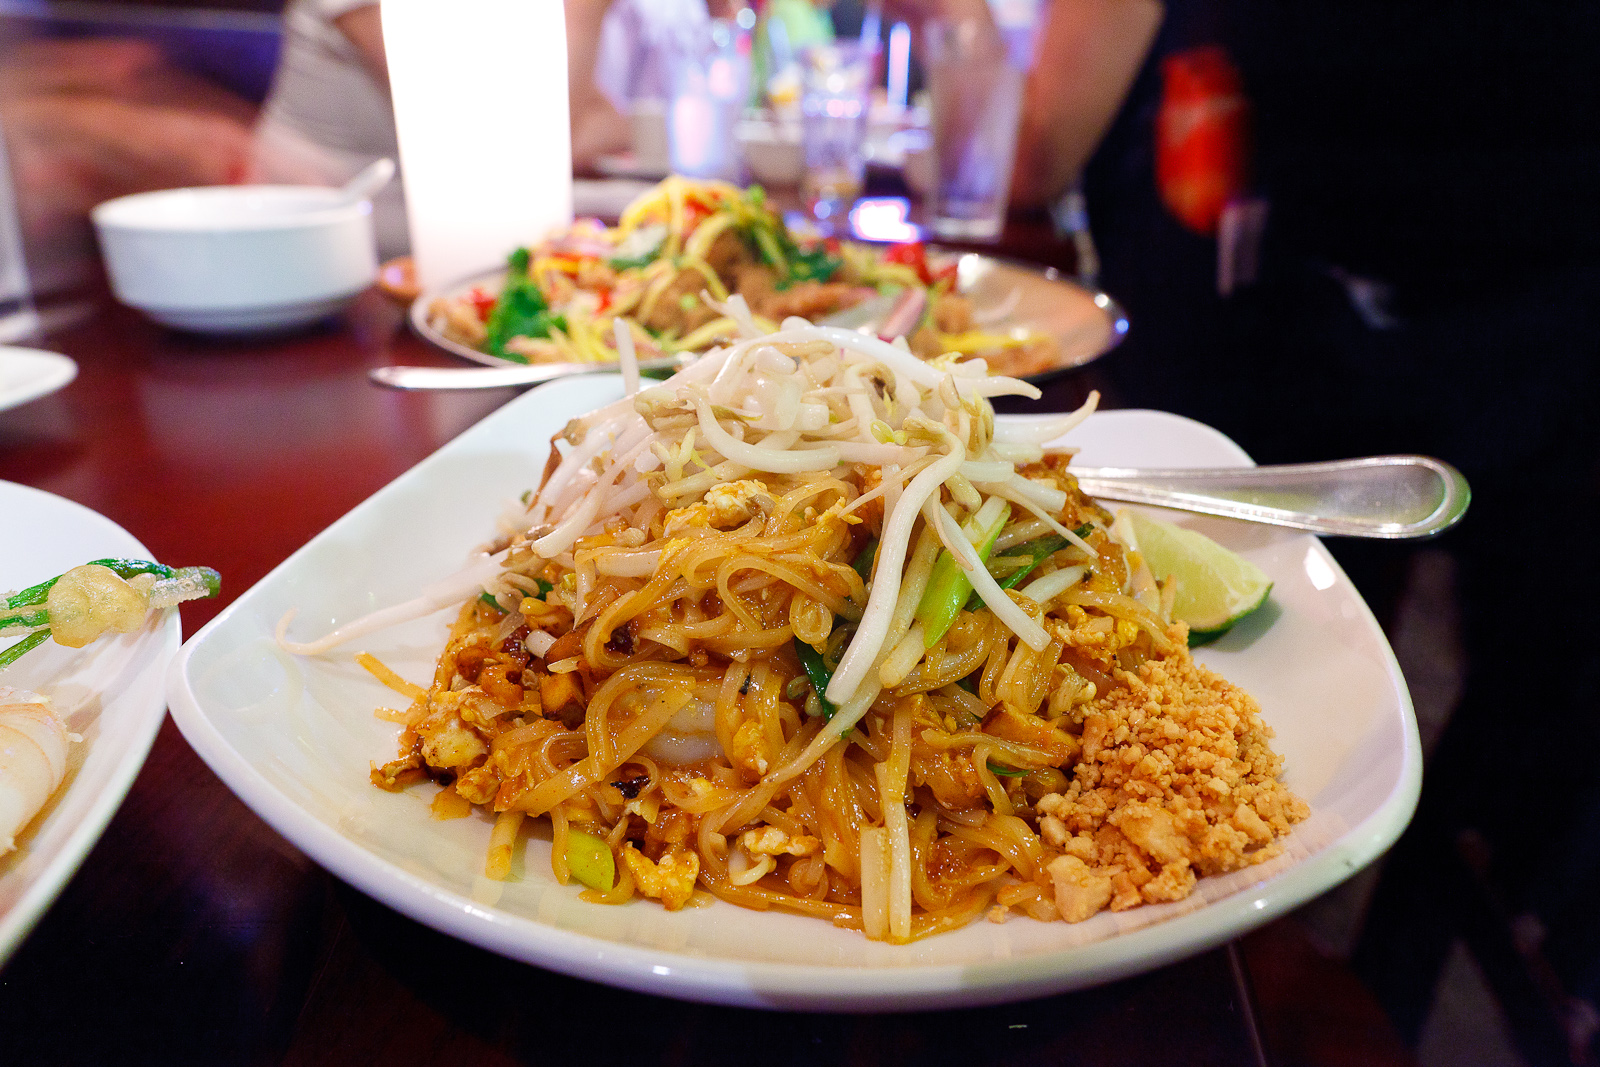 Shrimp pad thai with bean sprout, egg, and peanuts ($8)